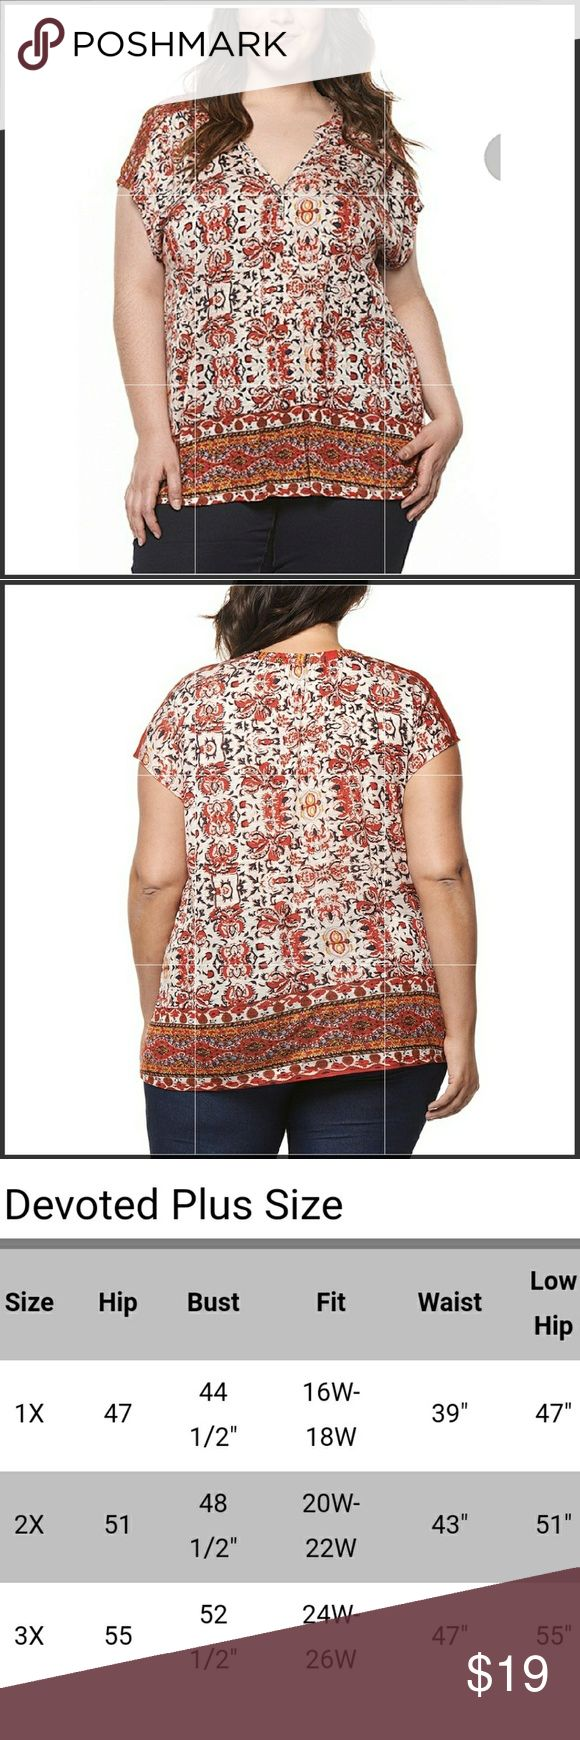 Boho plus size top NWT This is the perfect piece to build a boho look,this is a very cute and very bold pattern that flatters your figure with a deep v neck,the material has some stretch and fits true to size.price FIRM Tops